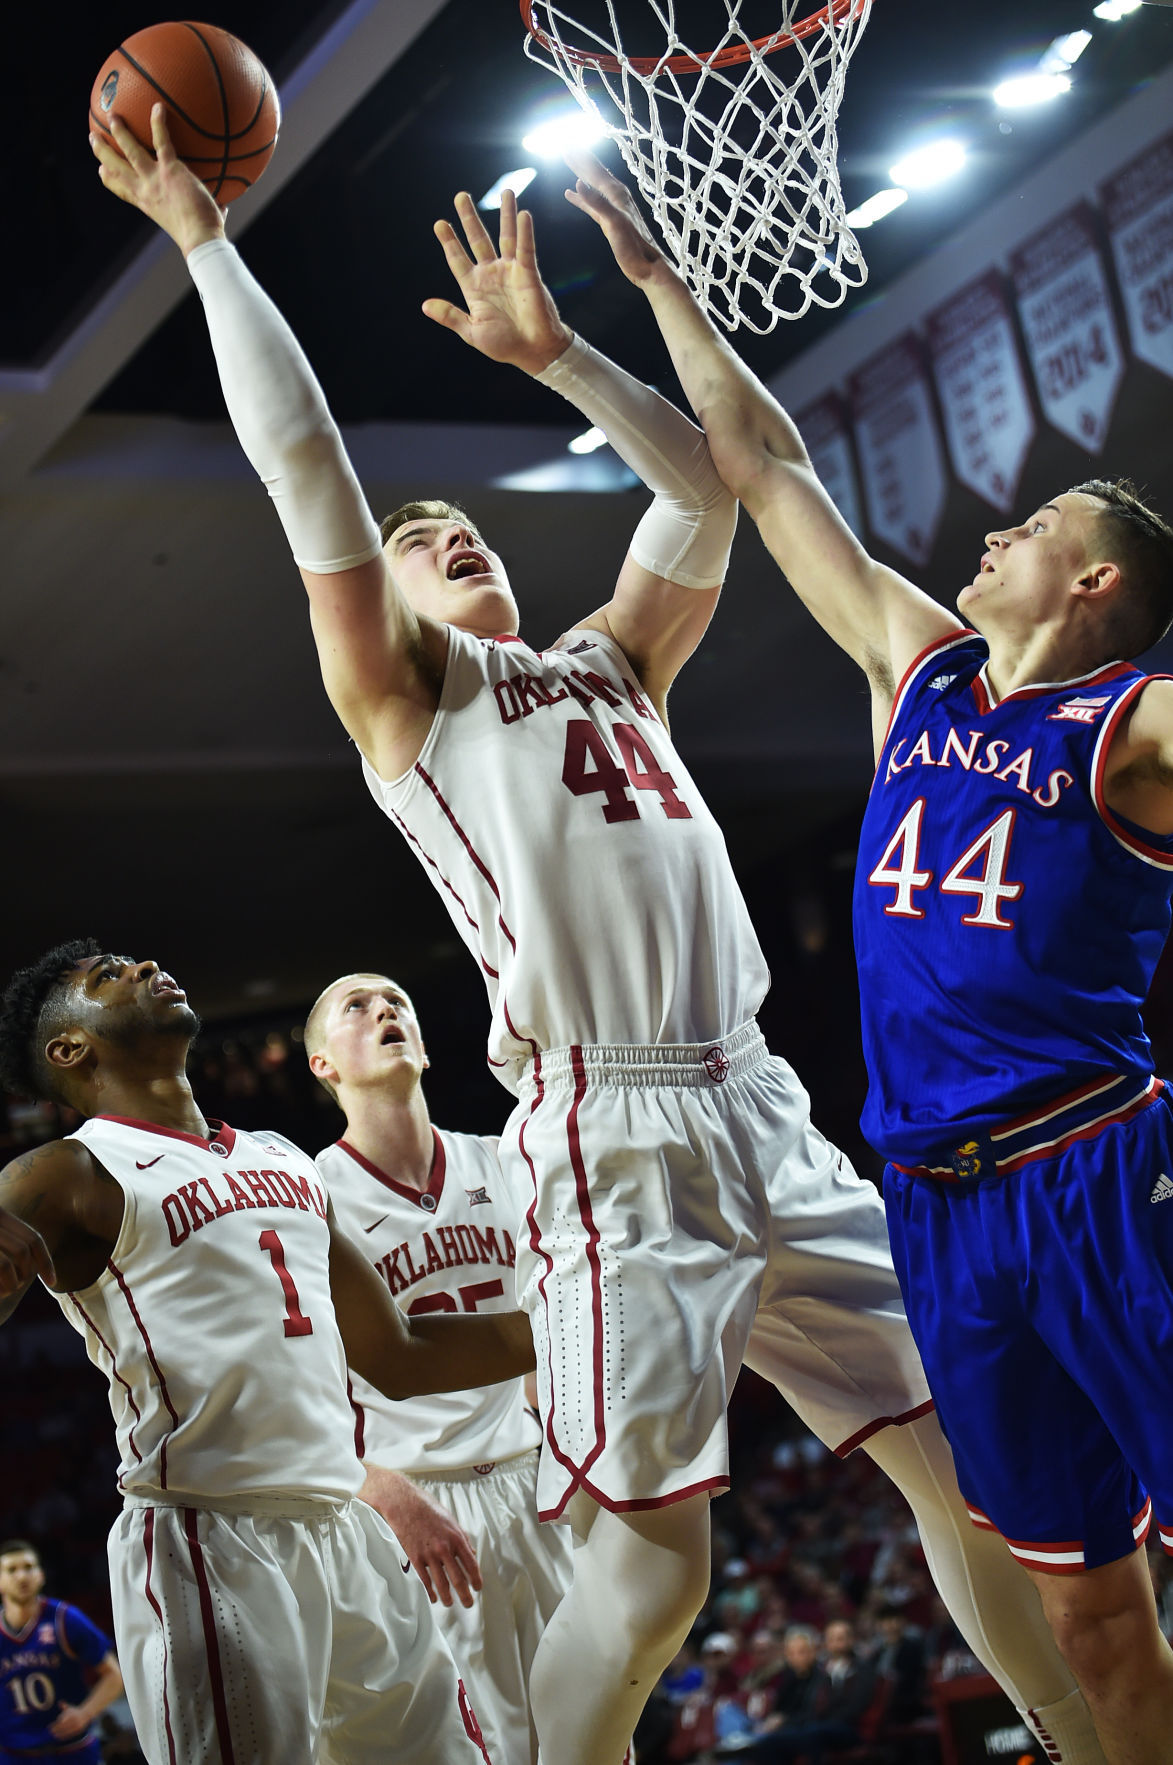 OU basketball: For Hannes Polla, development also comes with chances to contribute | OU Sports ...